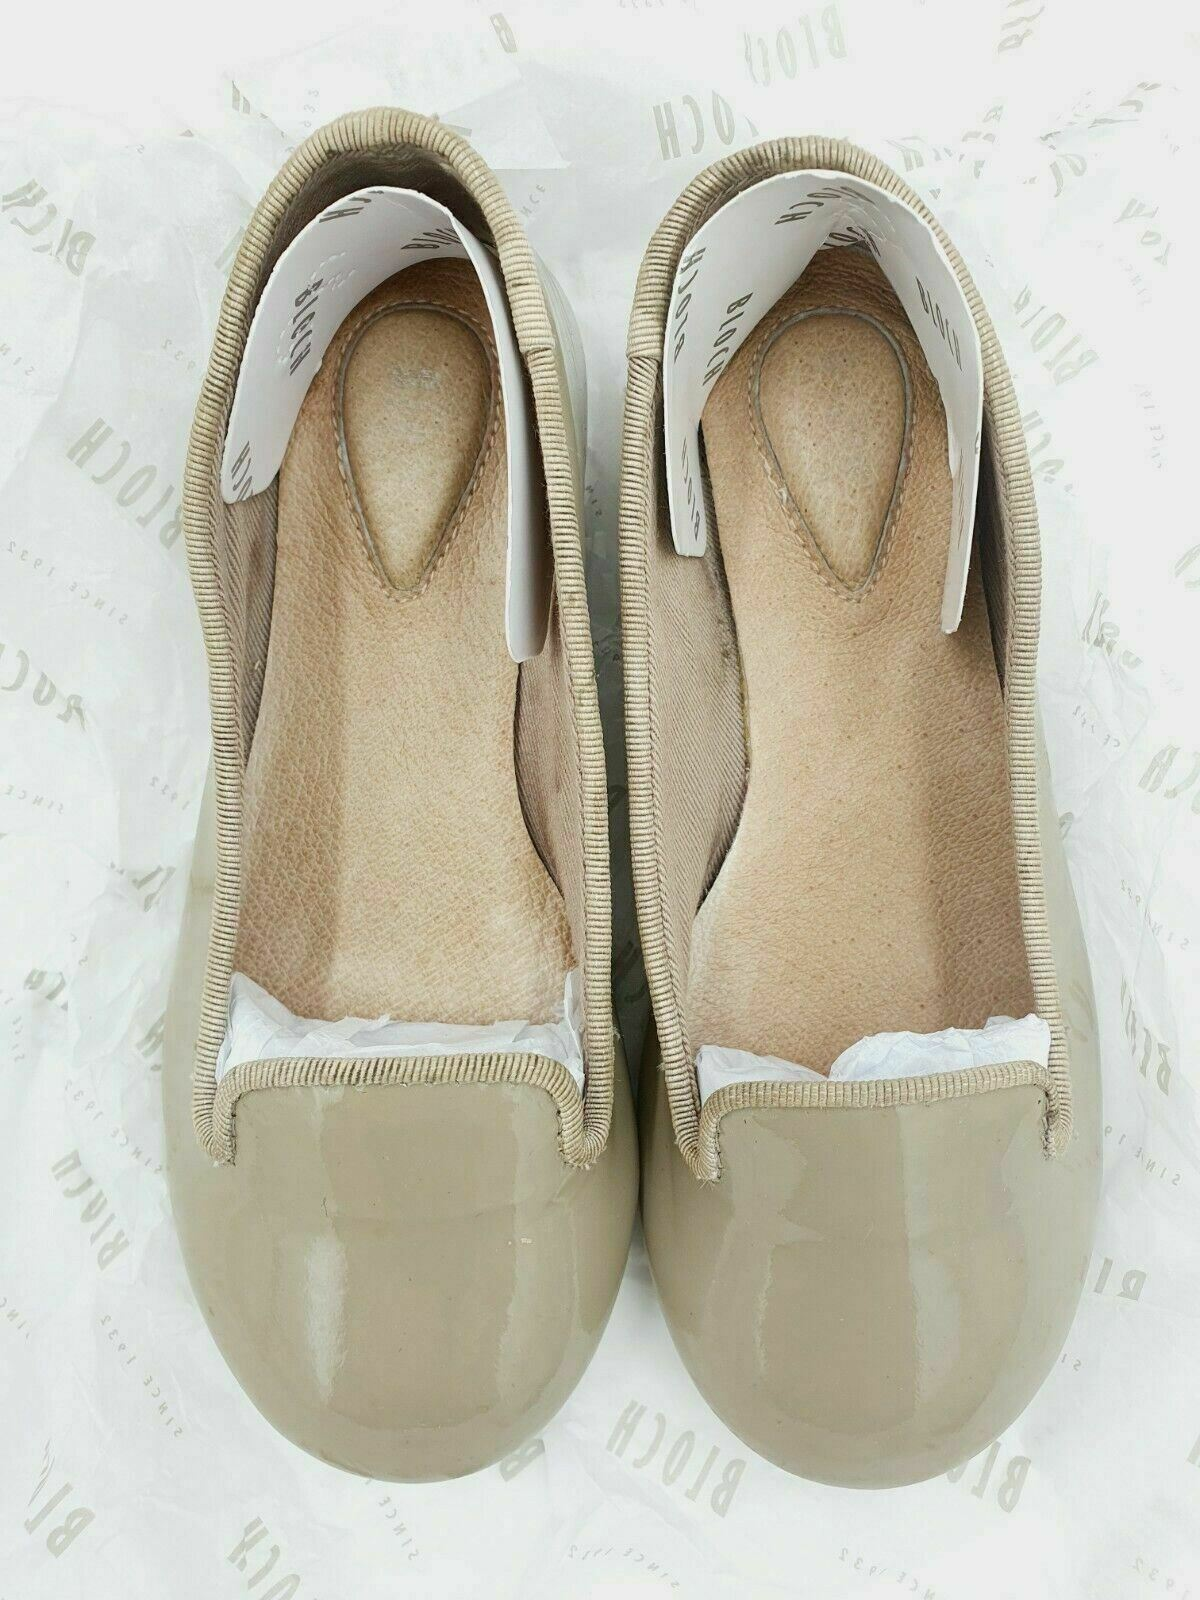 BLOCH Toddler Leather Dance Shoes Size 26 New